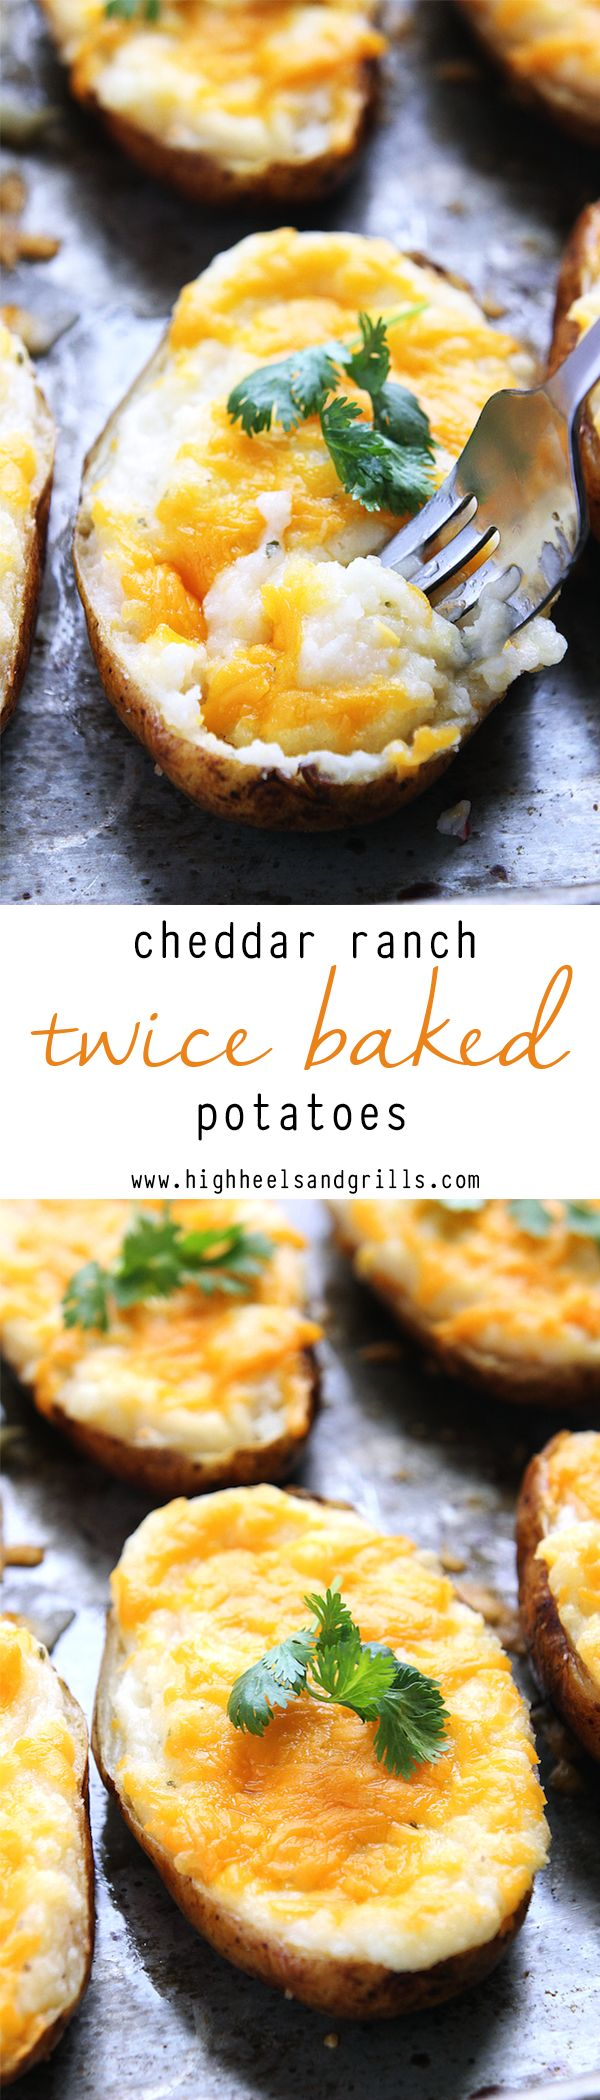 These Cheddar Ranch Twice Baked Potatoes are the only potato recipe you will ever need. They're like a mix between a baked potato, mashed potatoes, and cheesy potatoes with a delicious ranch taste!: